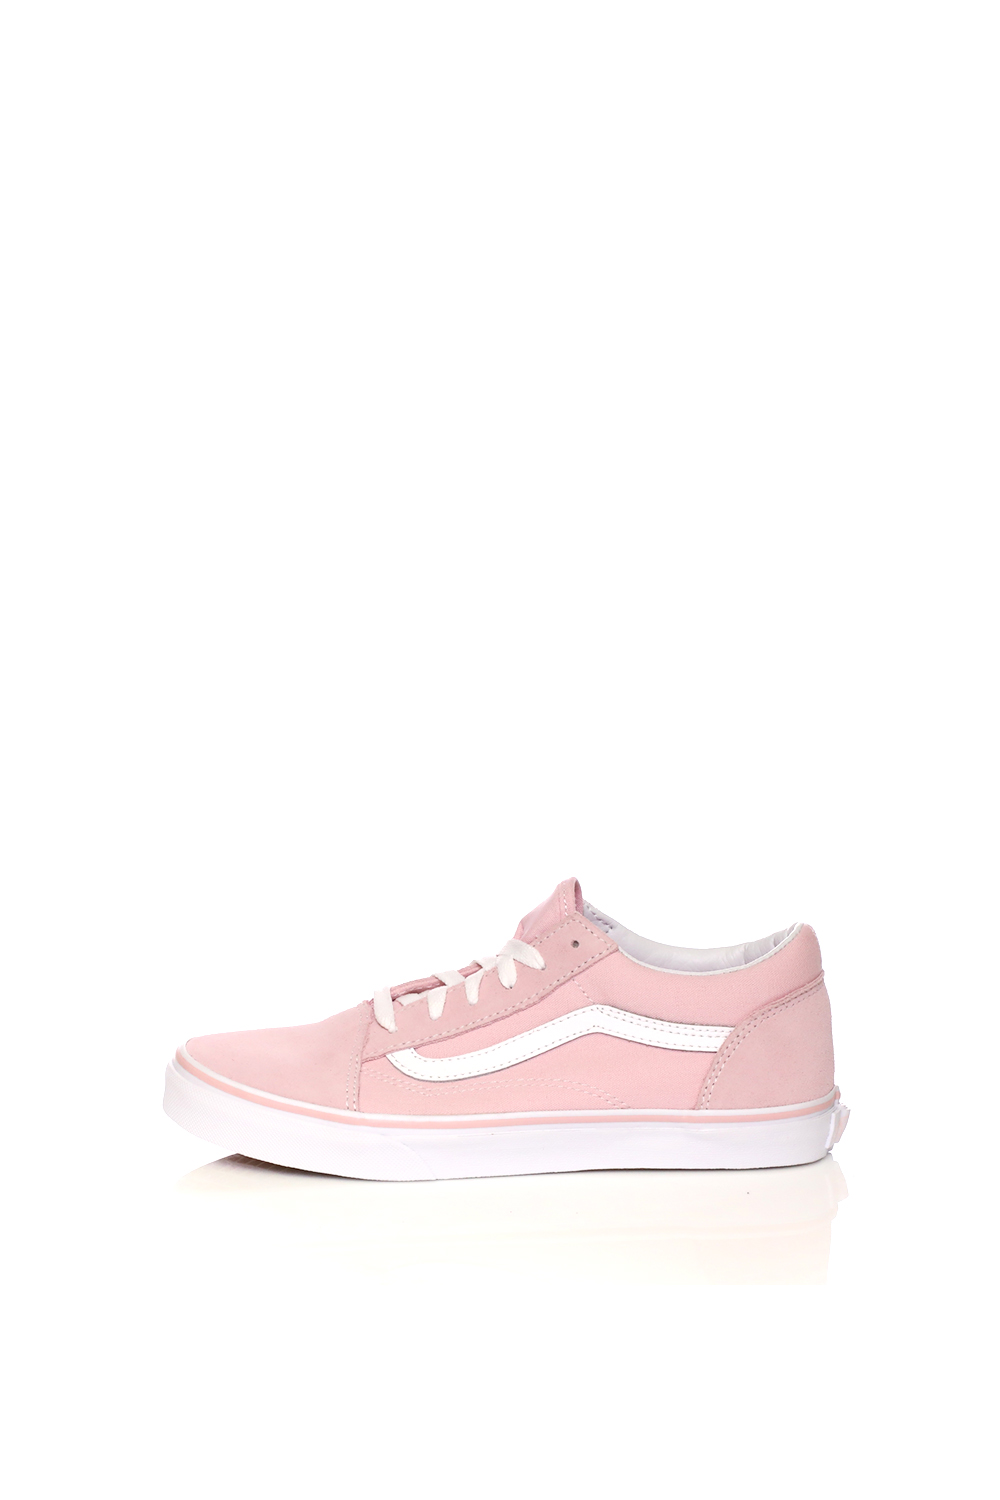 e16f6ae4a2d VANS - Παιδικά sneakers VANS Old Skool ροζ - Roe Shoes Collection